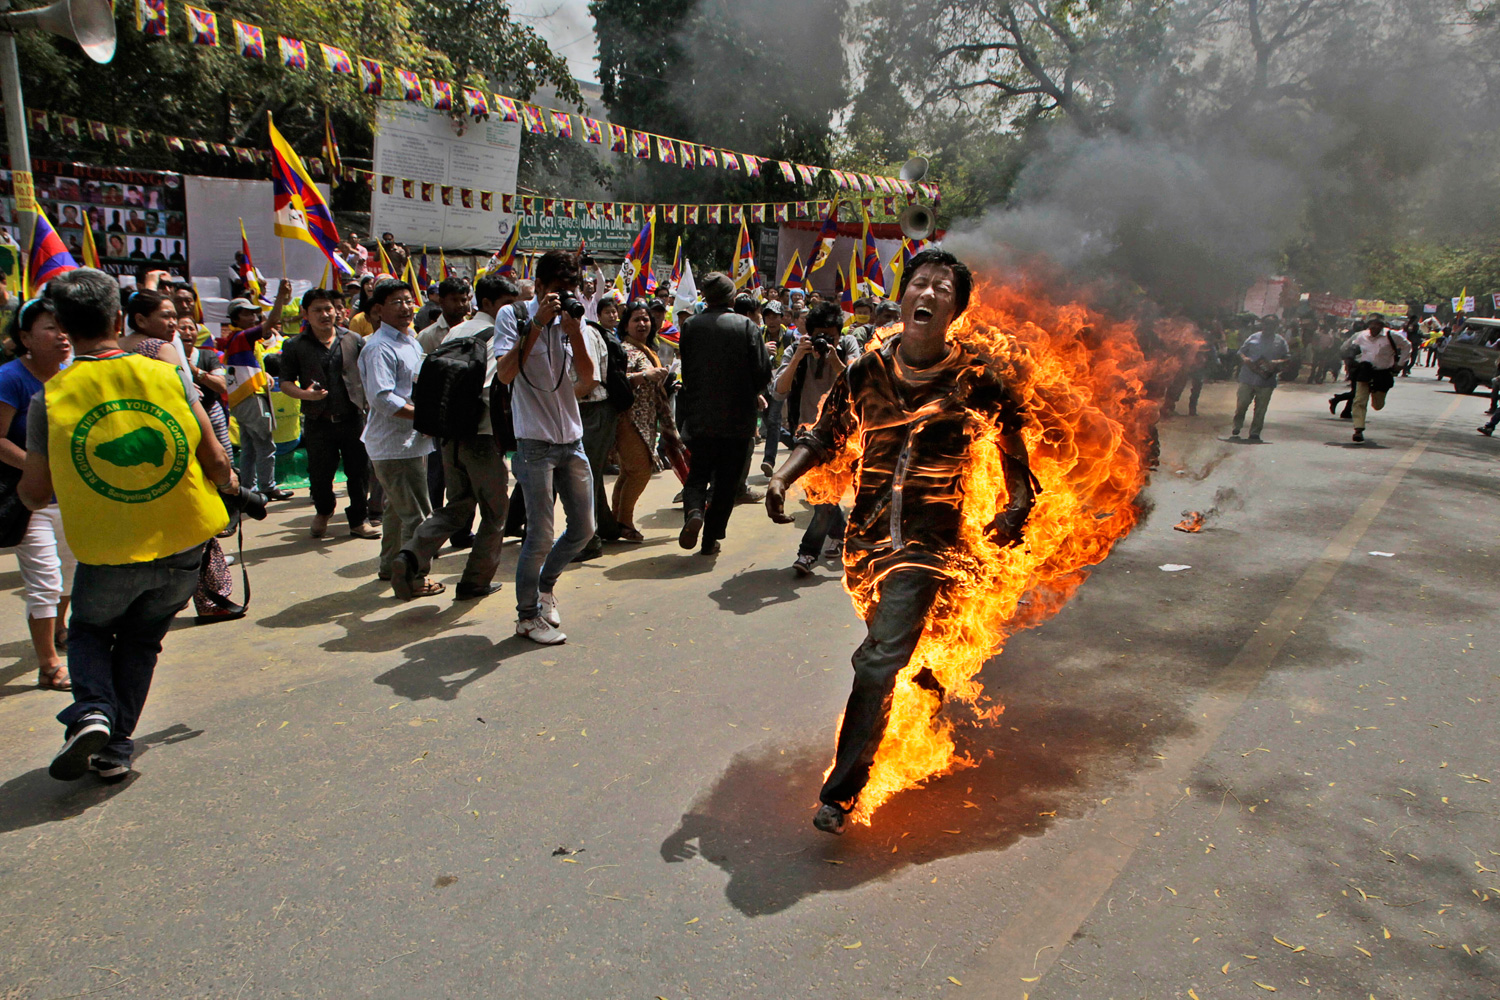 March 26, 2012. A Tibetan exile, identified as Jampa Yeshi, runs engulfed in flames after self-immolating during a demonstration in New Delhi.